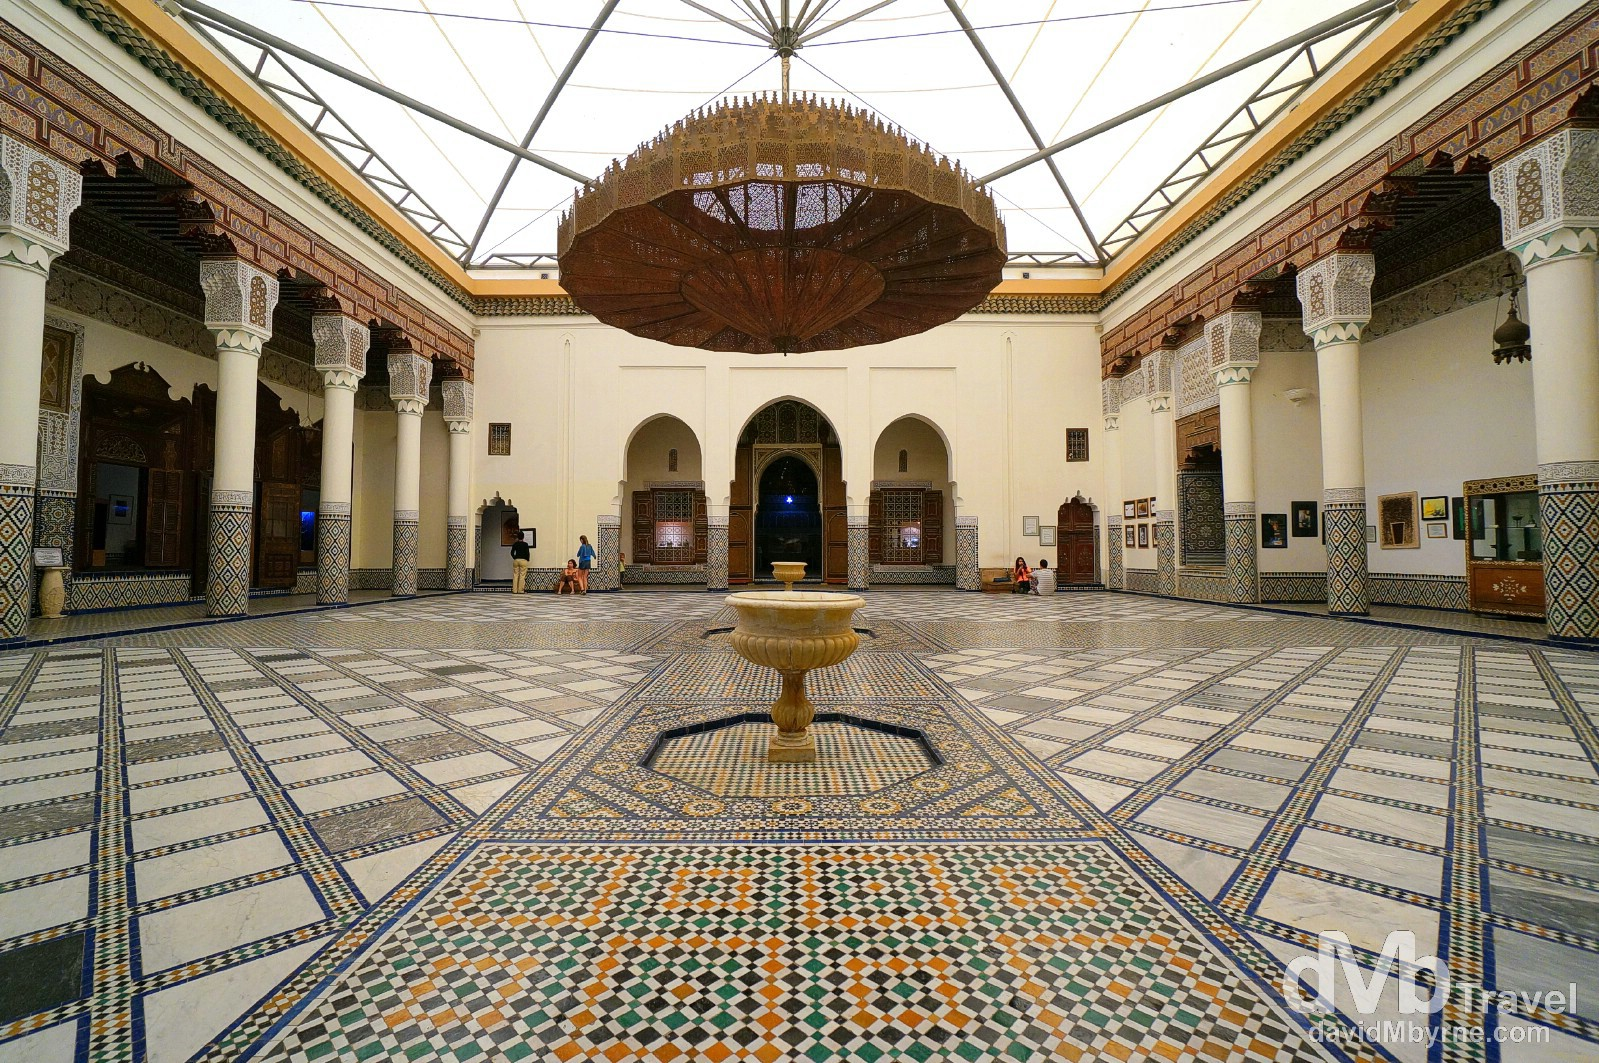 The arcaded inner courtyard of Mnebhi Palace, home to the Musee de Marrakech, Morocco. May 6th, 2014.